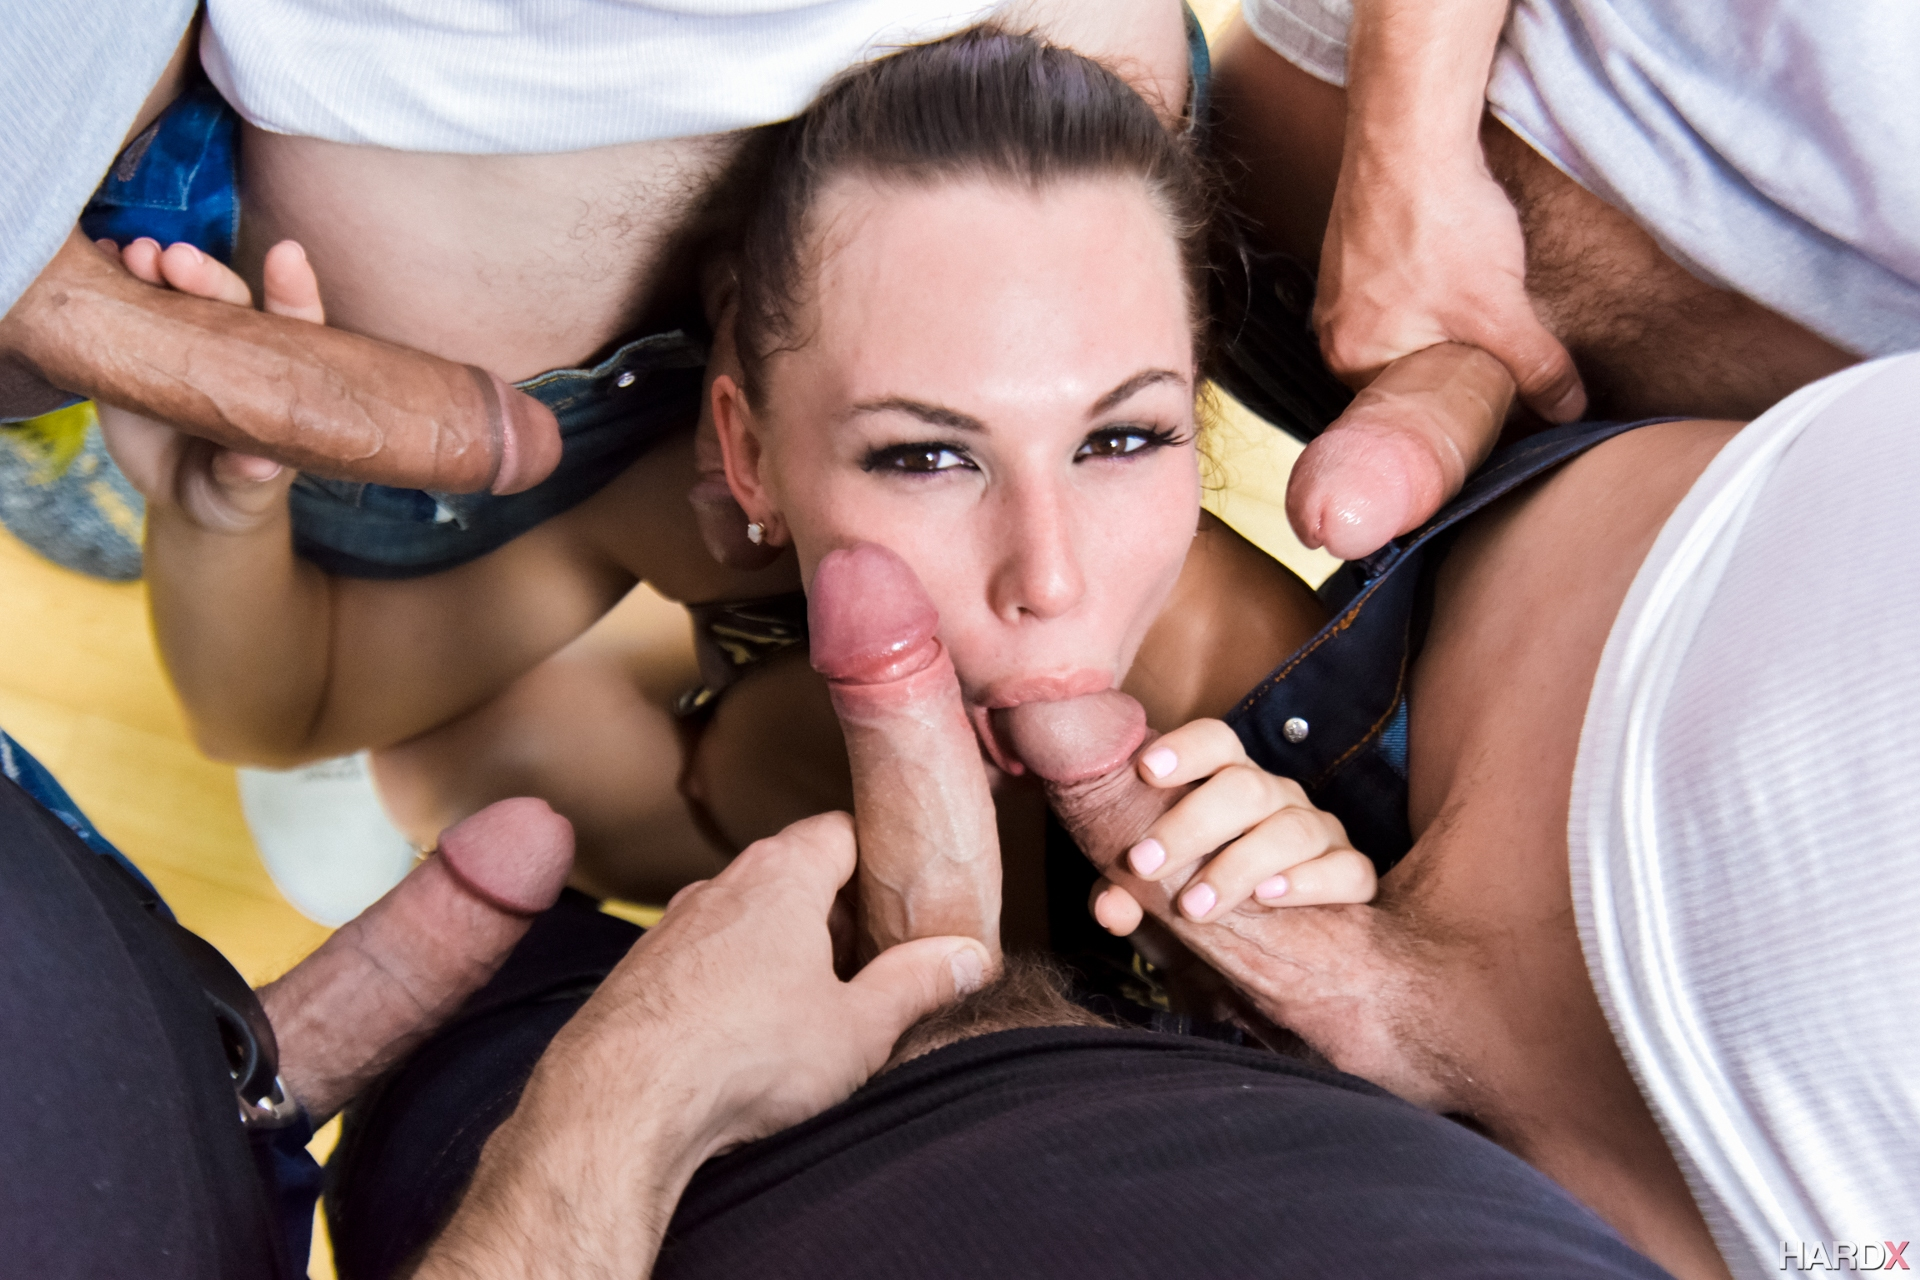 Slut taking cock in every hole, hardcore sex a